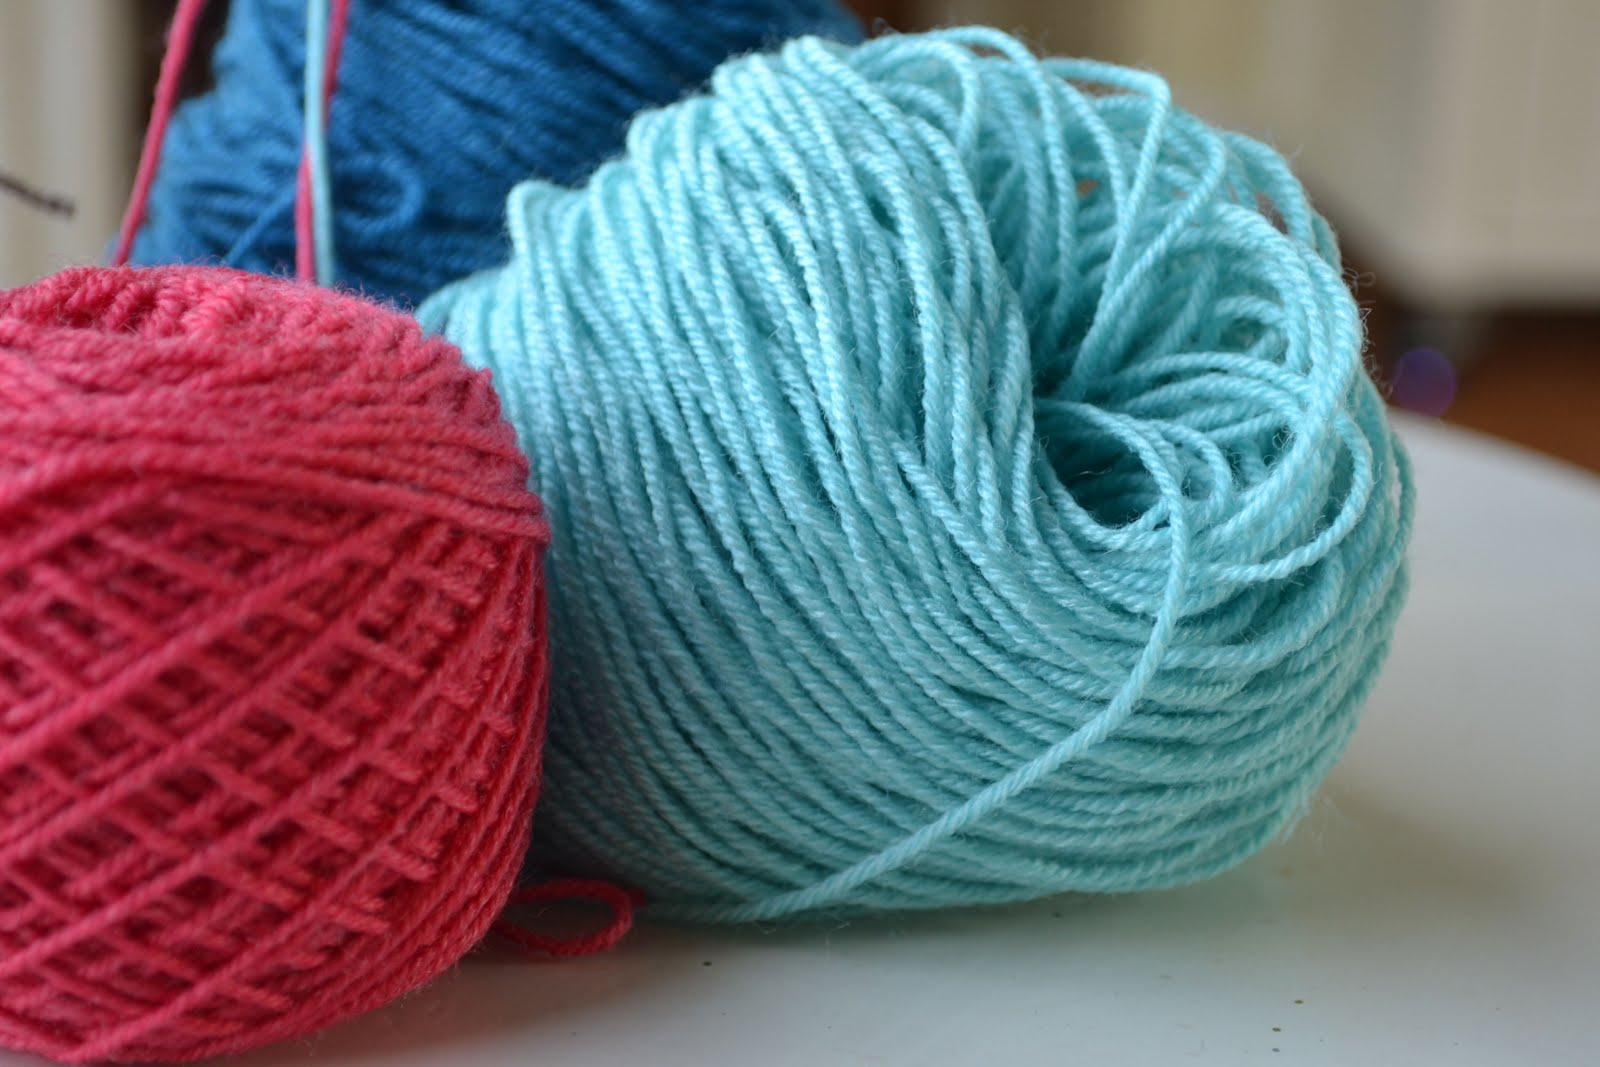 Crochet Yarn : Crochet in Color: Spud & Chloe Yarn Review